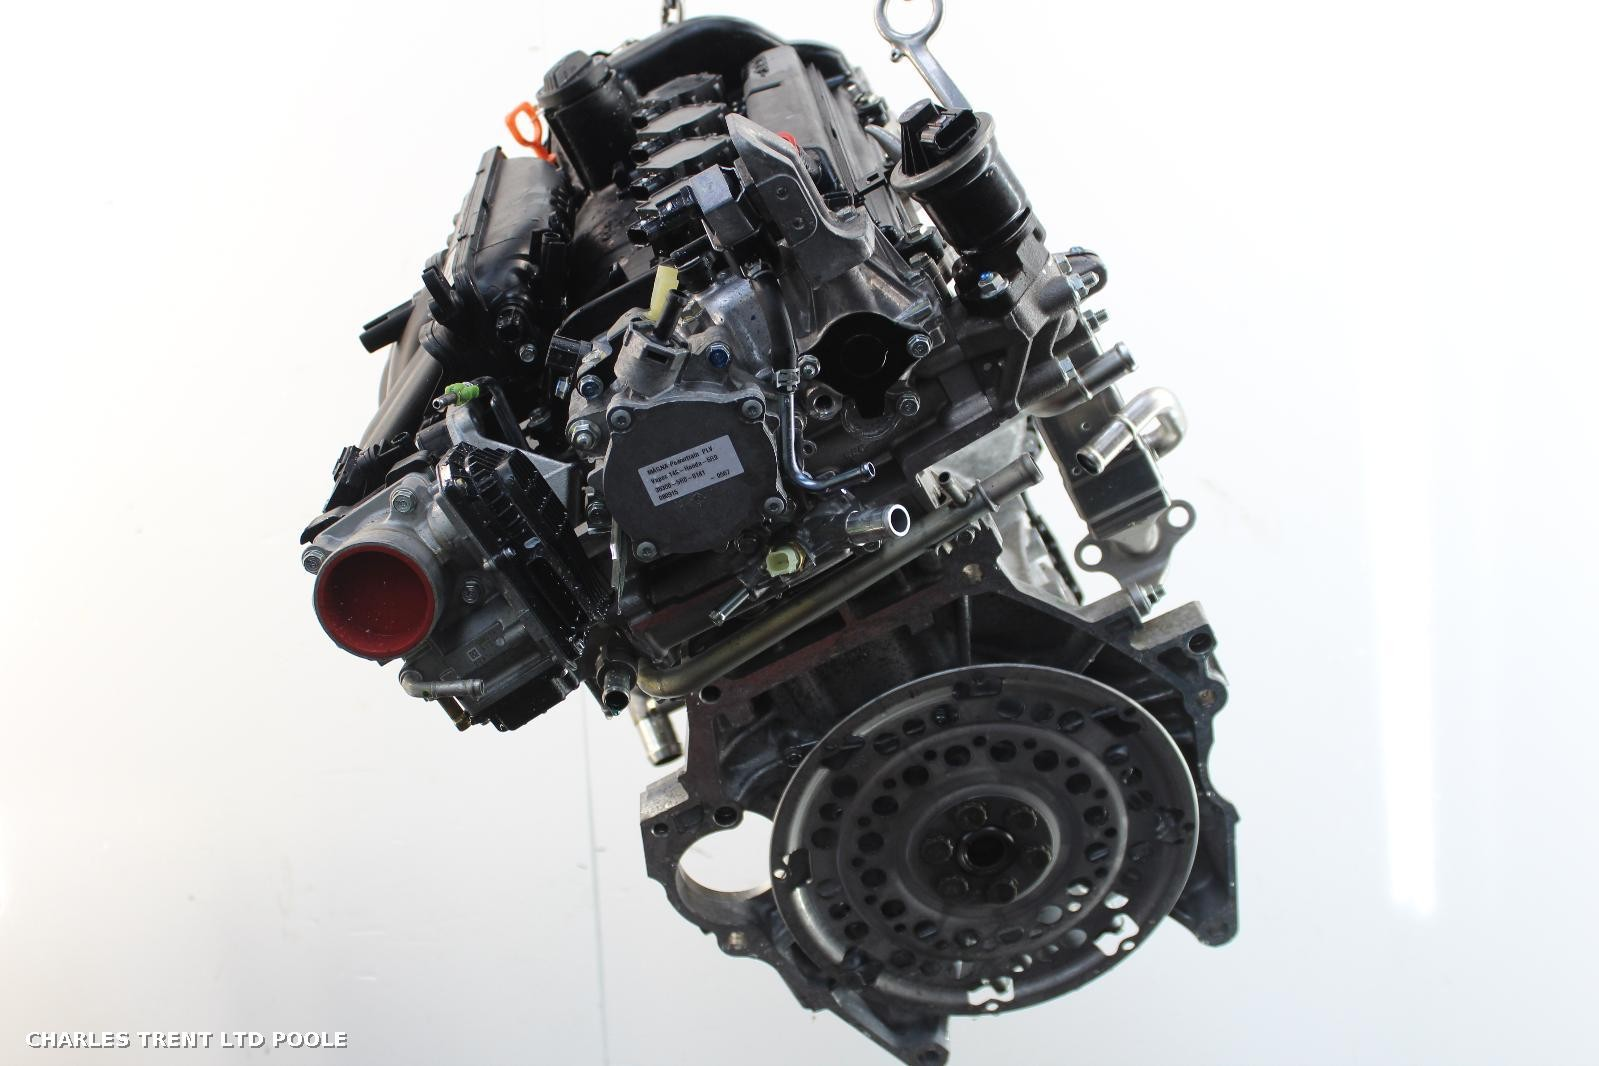 2016 - HONDA - JAZZ - ENGINES